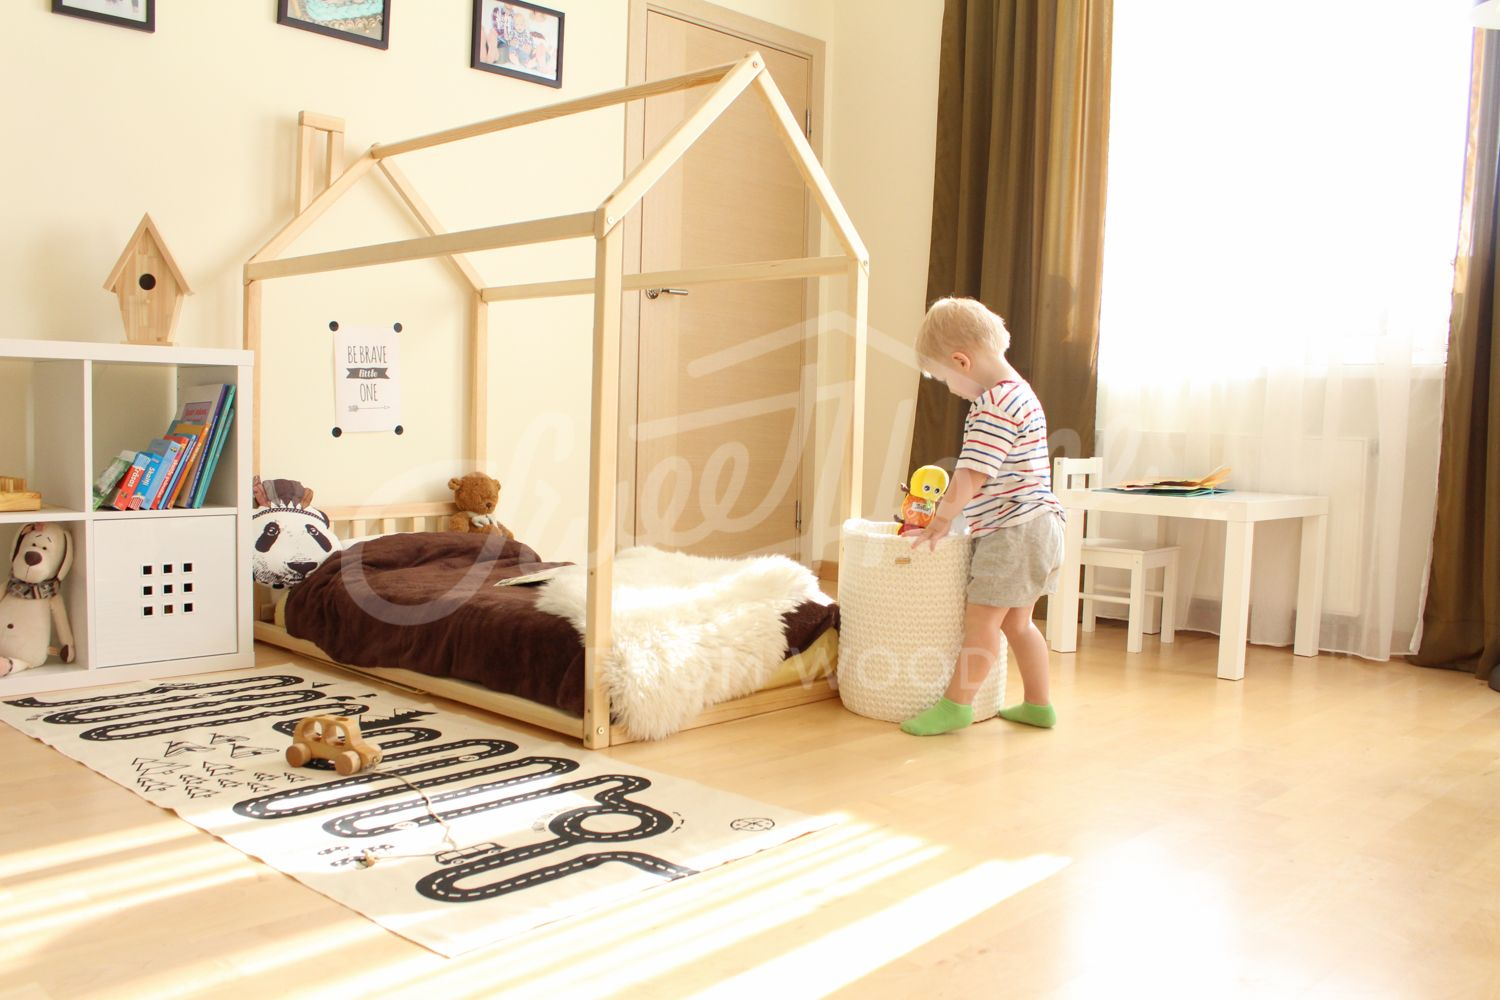 Toddler bed house bed tent bed children bed wooden house wood house wood nursery kids teepee bed wood bed frame wood house bed & Toddler bed house bed tent bed children bed wooden house wood ...